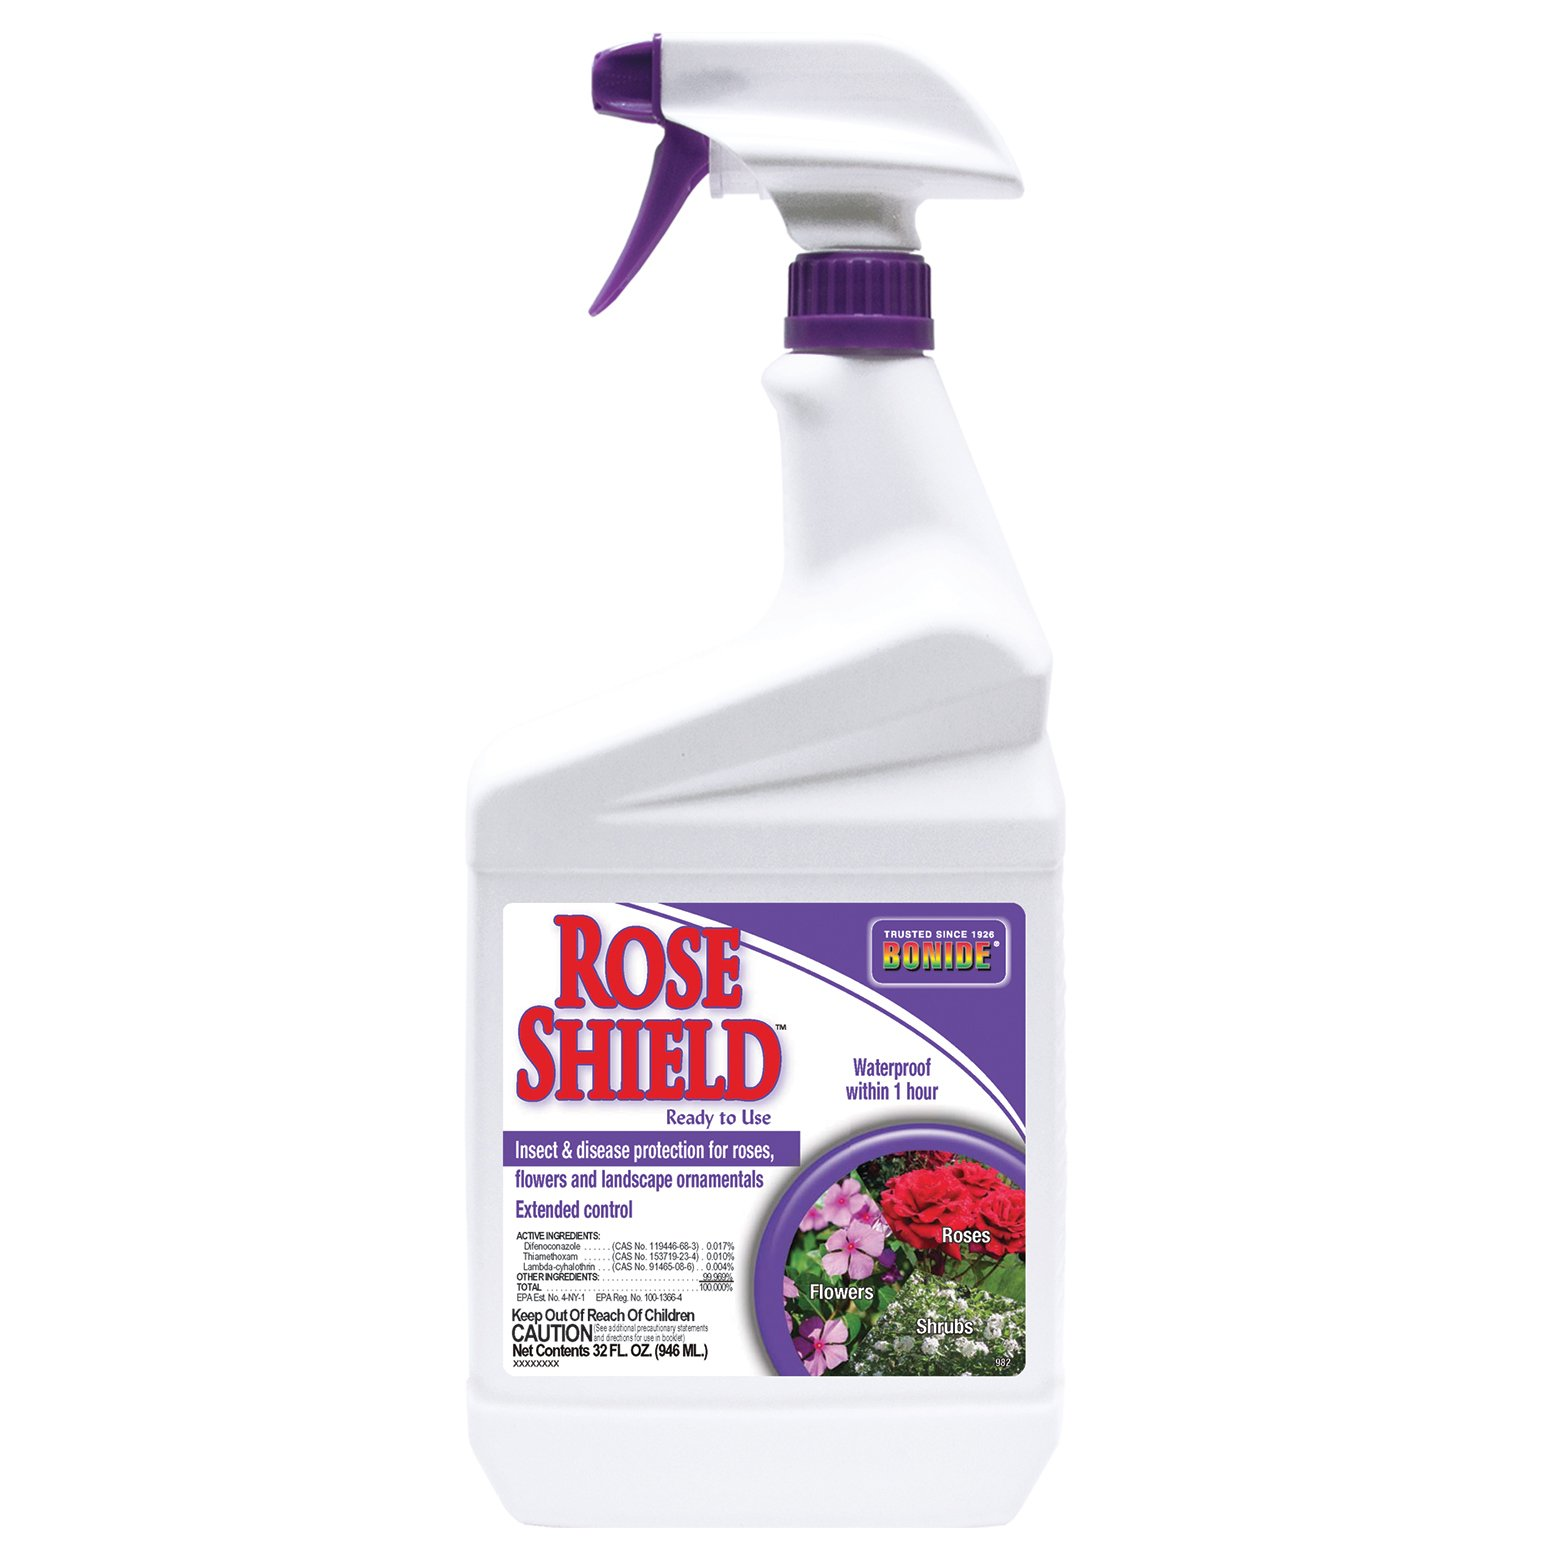 Bonide Chemical 982 037321009825 RTU Rose Shield, 1-Quart, 1, Brown/A by Bonide